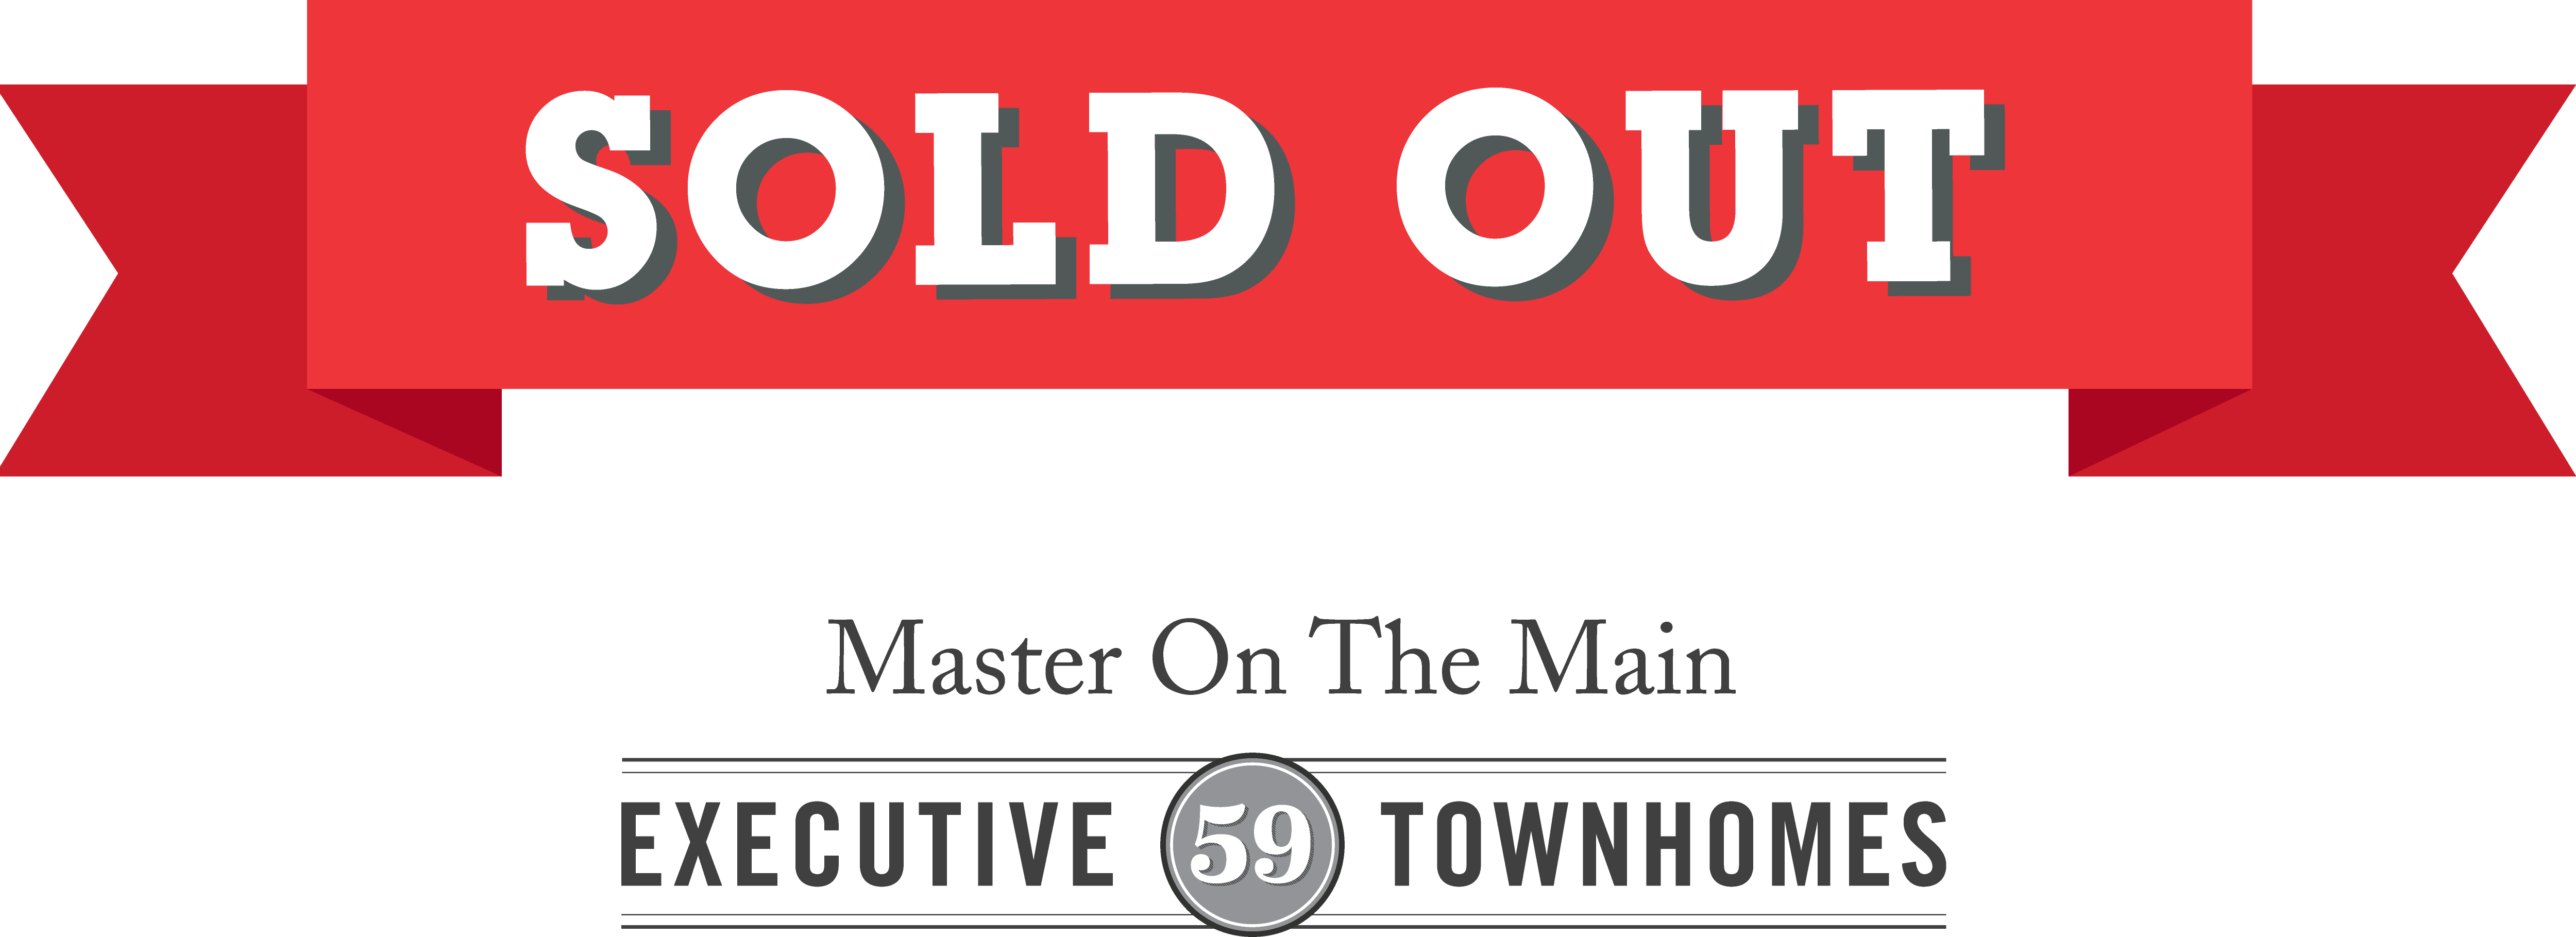 Heritage sold out banner